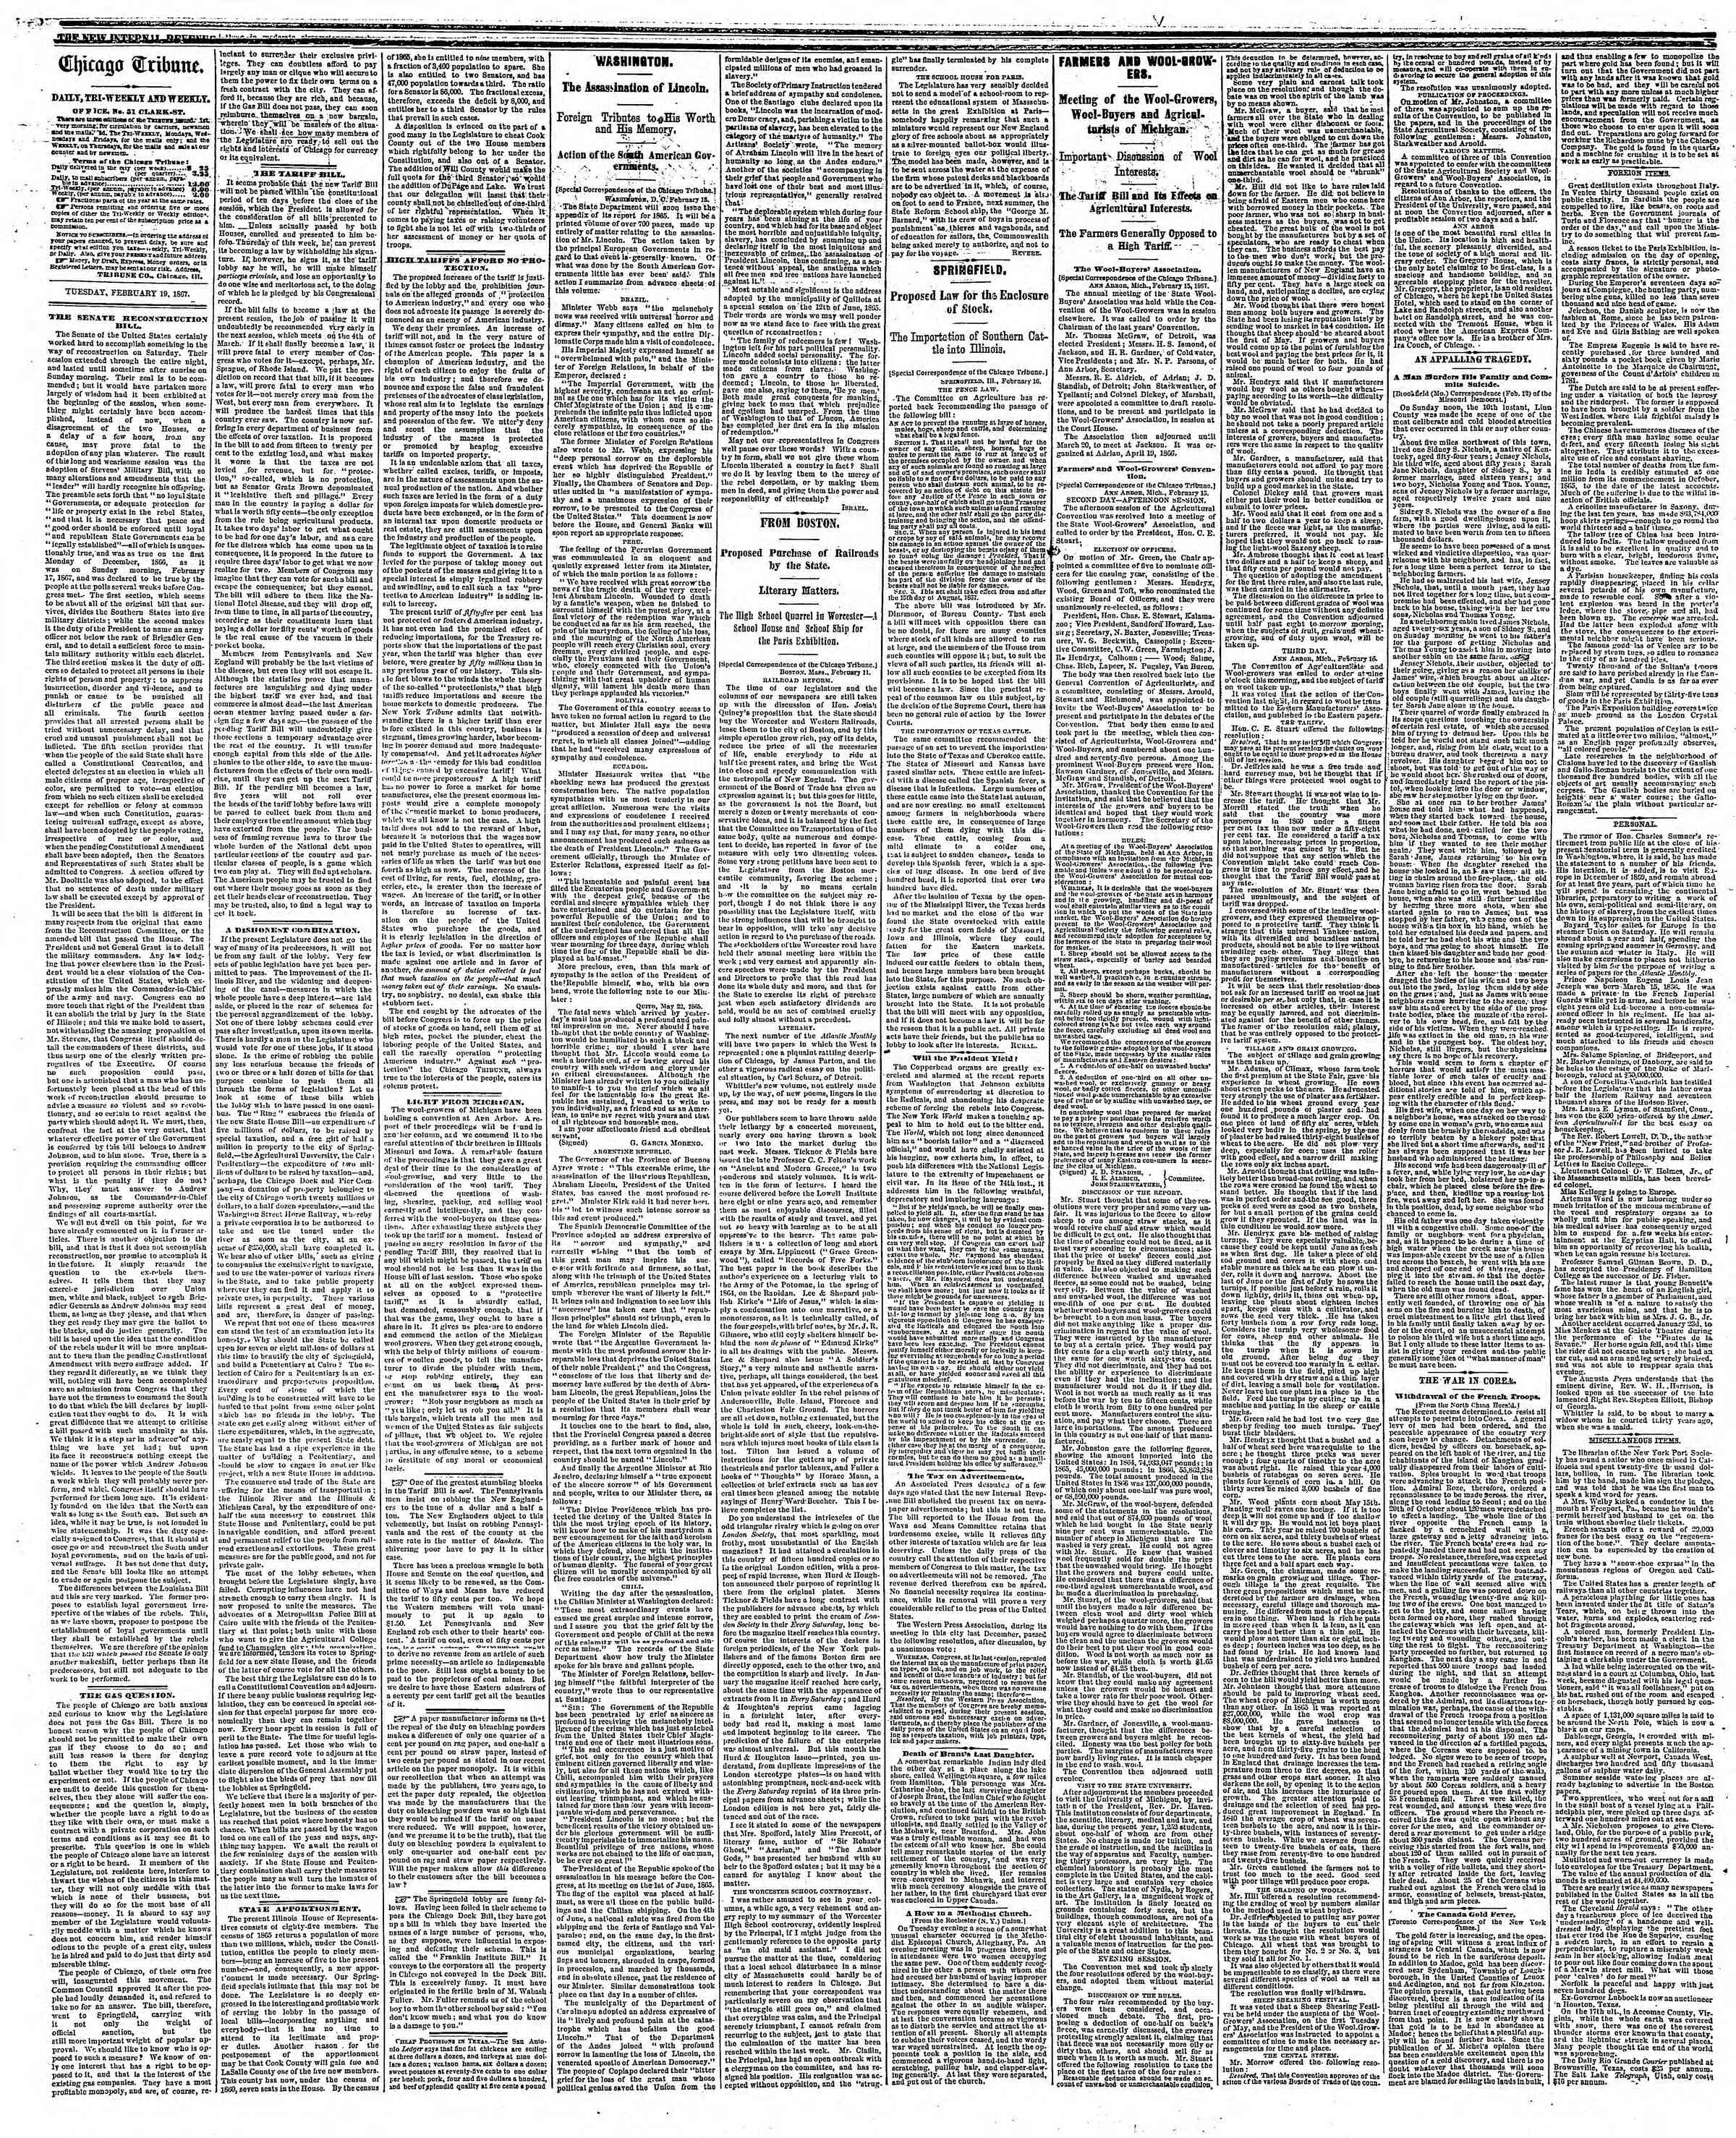 Newspaper of The Chicago Tribune dated February 19, 1867 Page 2